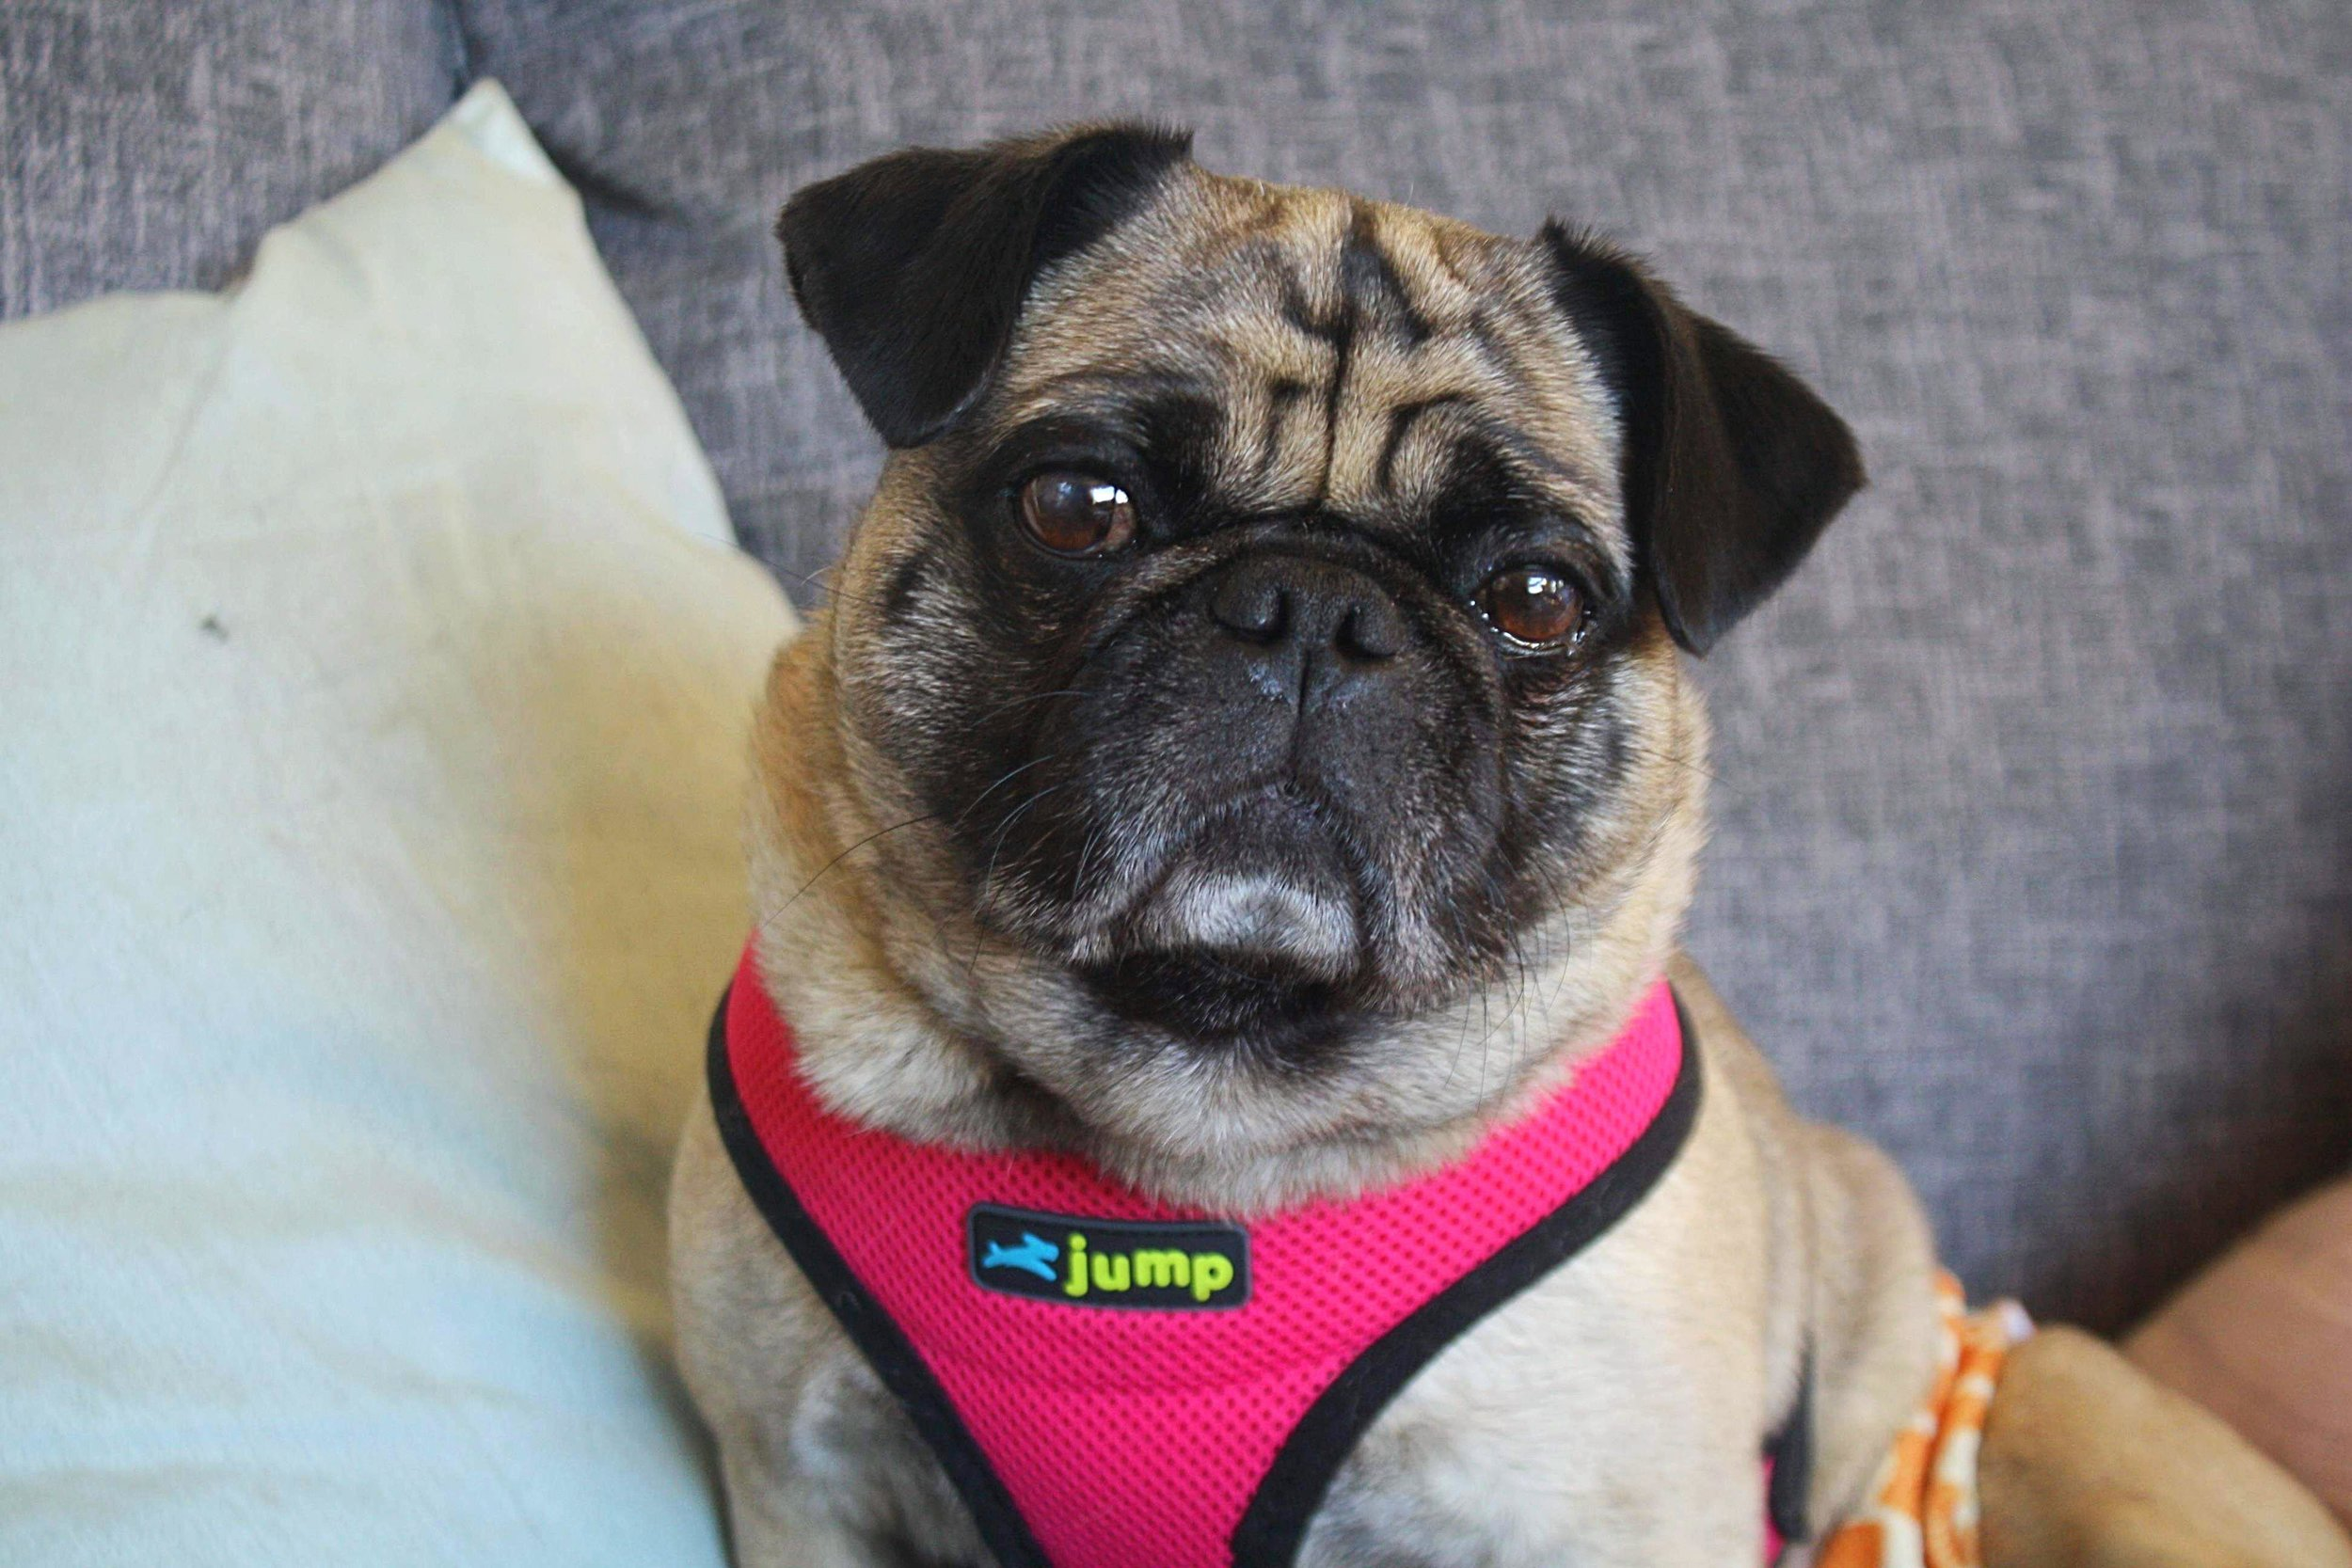 - Meeka is a 3 year old Pug from Ontario, Canada. She lived a life abuse which left her partially paralyzed. Her luck turned around when K9 Crusaders saved her.Meeka is full of life and would love to play with her foster brothers. She is need of a rear-end wheelchair: $250